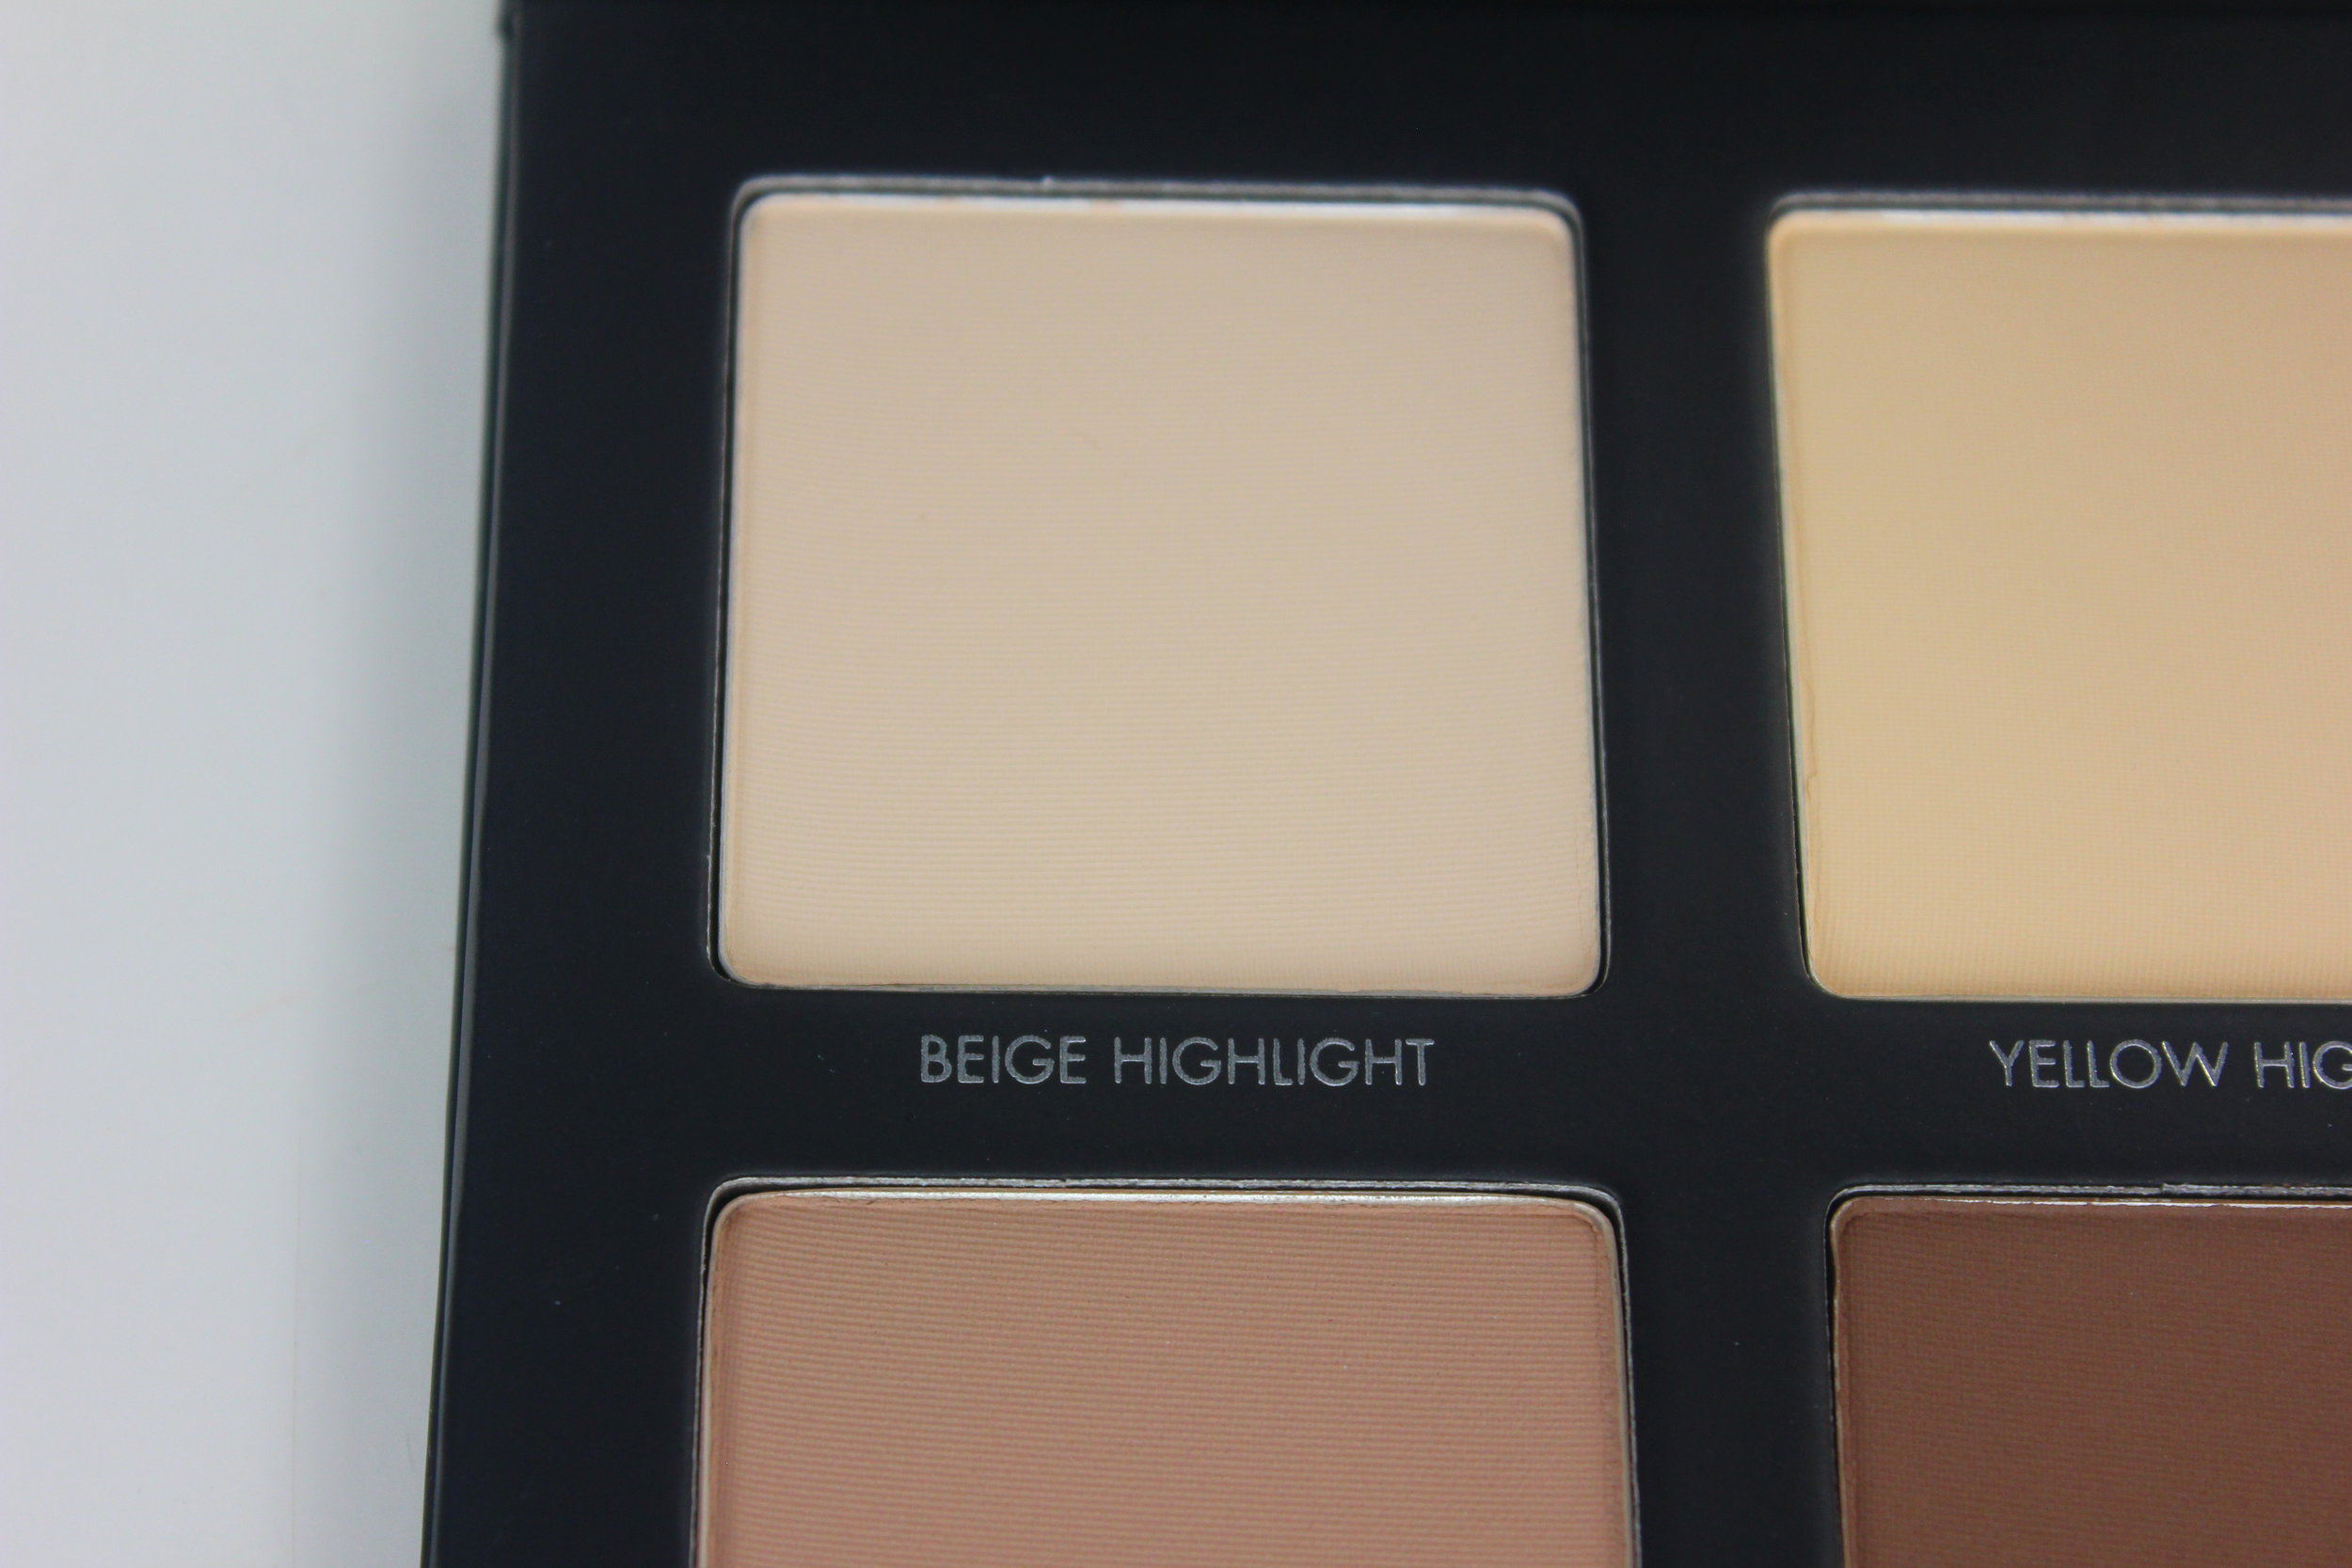 Lorac Pro Contour Palette - Beige Highlight Swatch 1